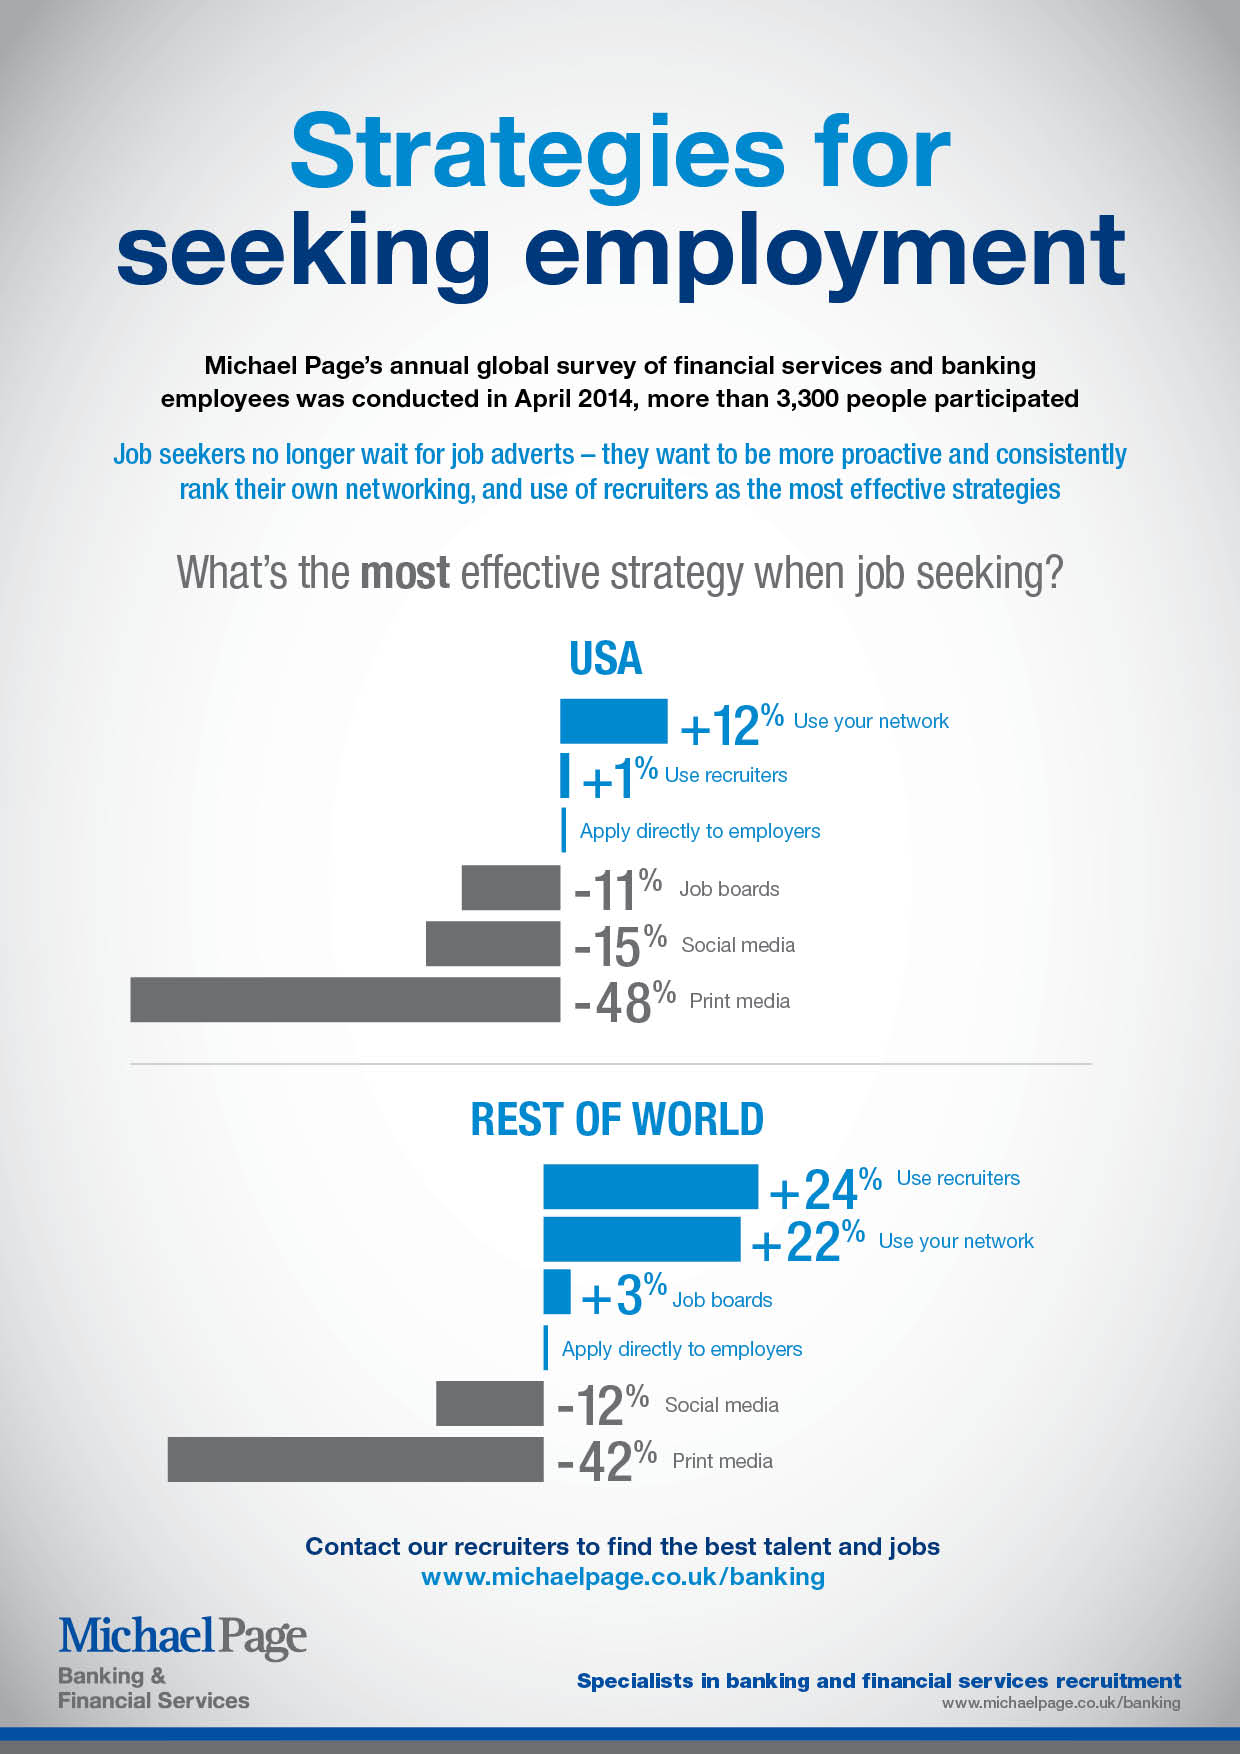 Strategies for seeking employment